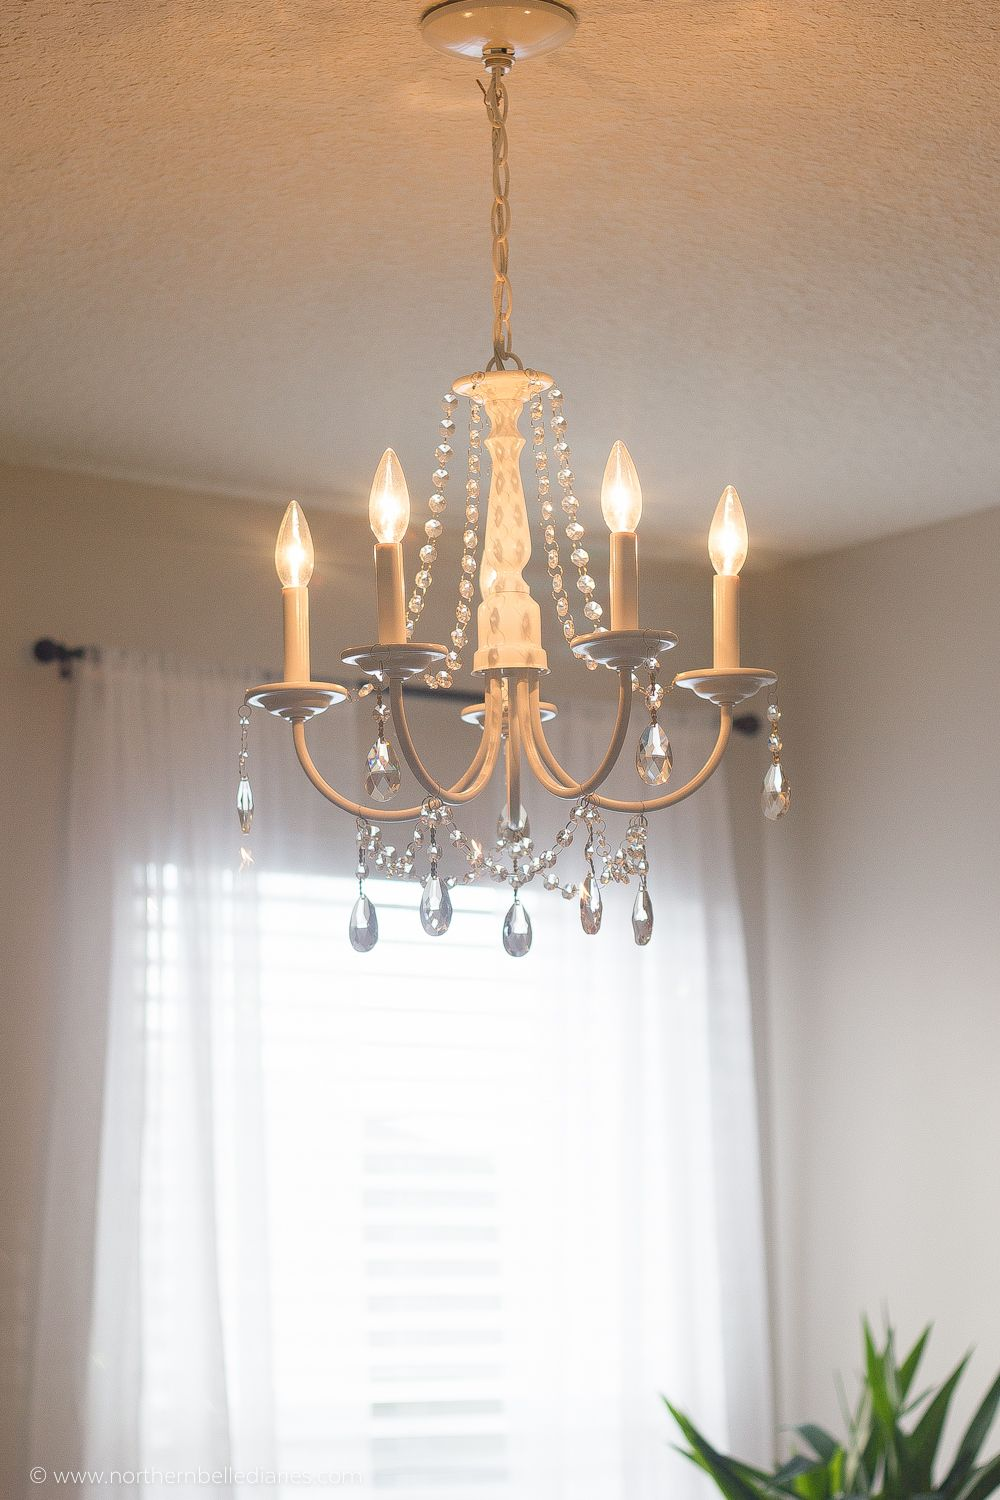 Diy chandelier makeover araa de luces chandeliers chandelier diy chandelier makeover araa de luces chandeliers chandelier makeover and diy chandelier arubaitofo Choice Image